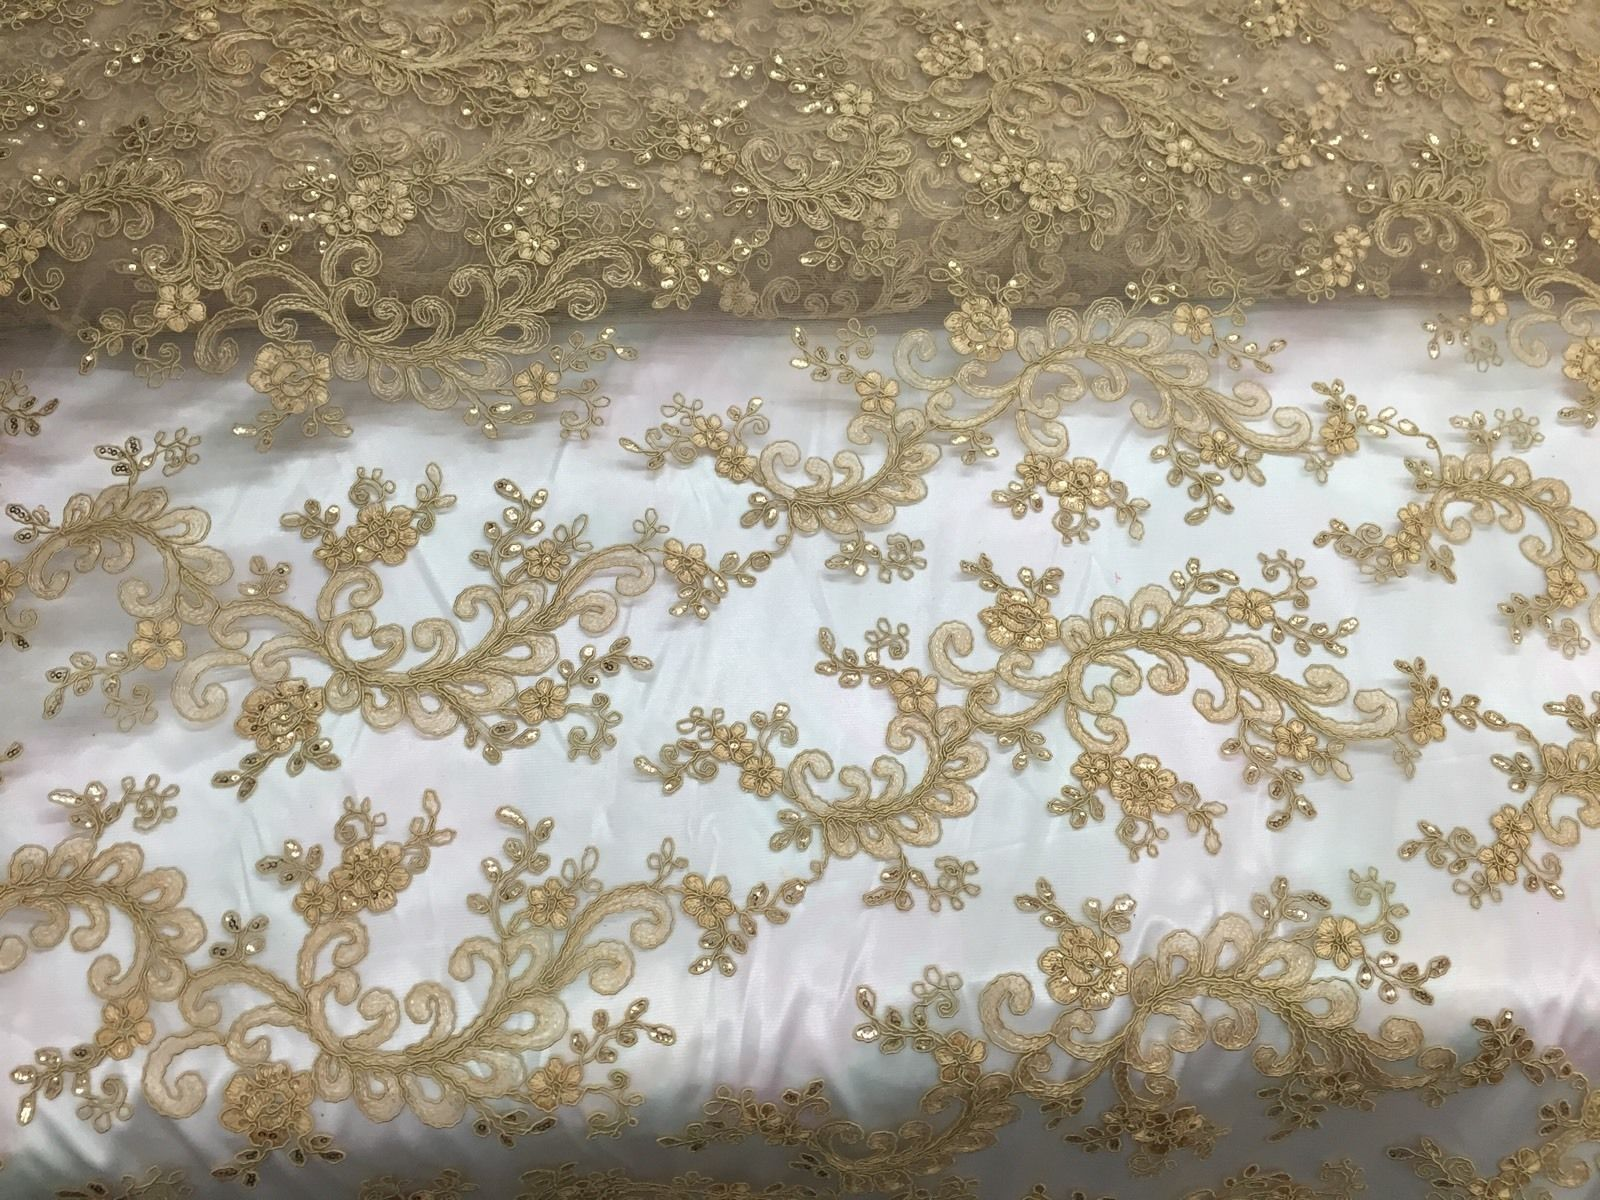 Gold French Corded Design-embroider With Sequins On A Mesh Lace Fabric-by Yard- - KINGDOM OF FABRICS